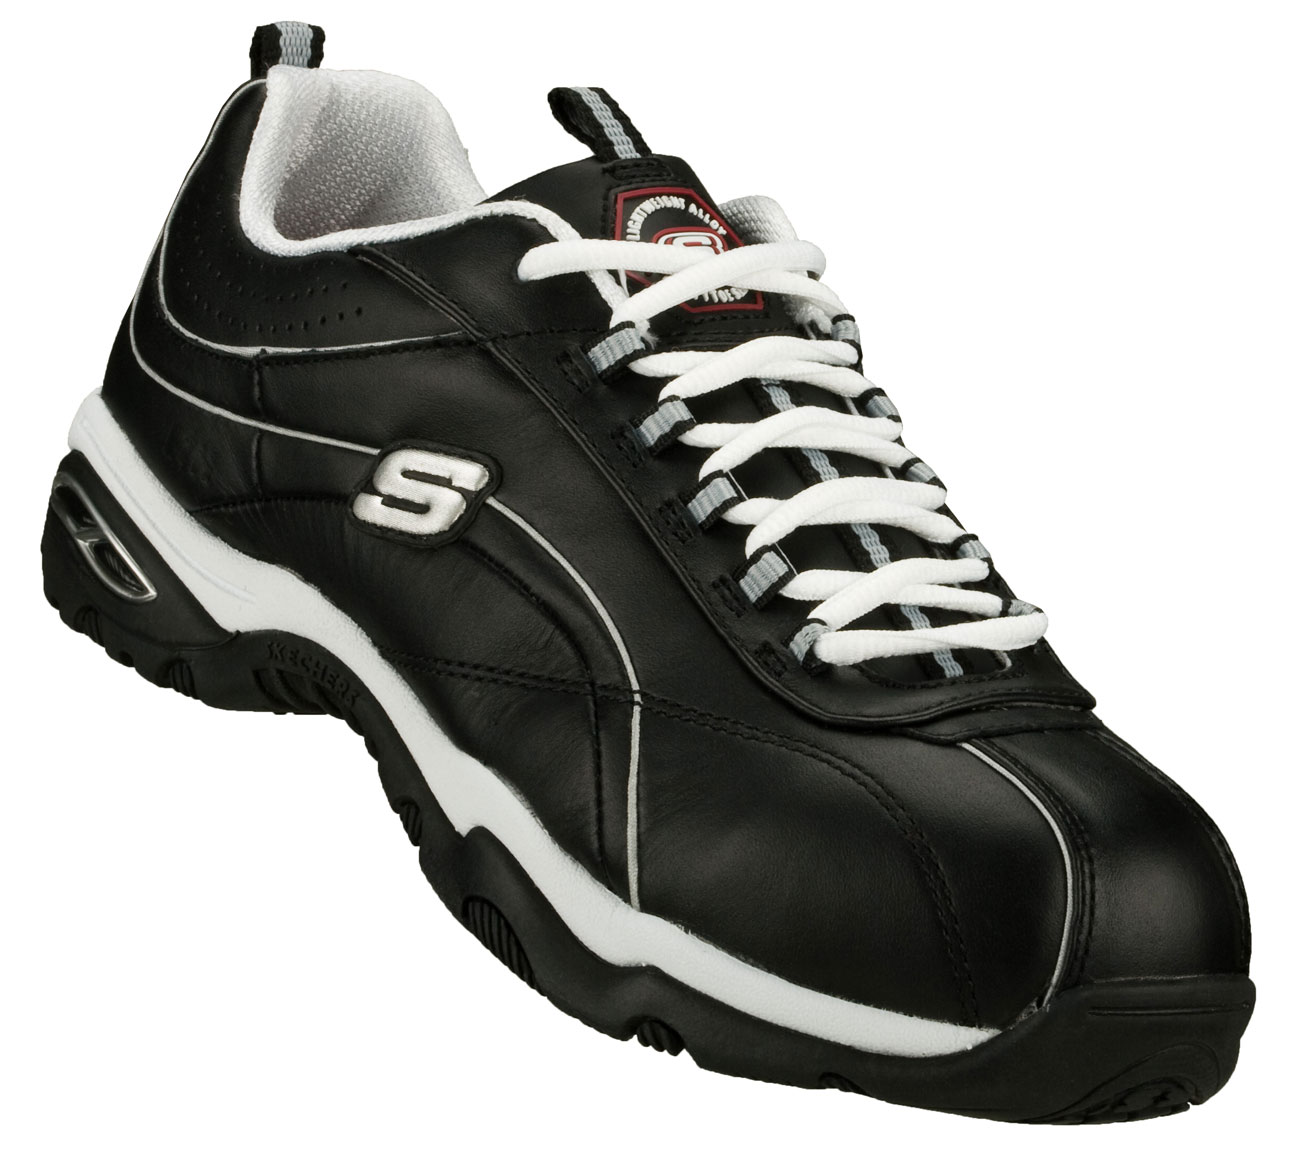 Extream Fashion Skechers Work Shoes